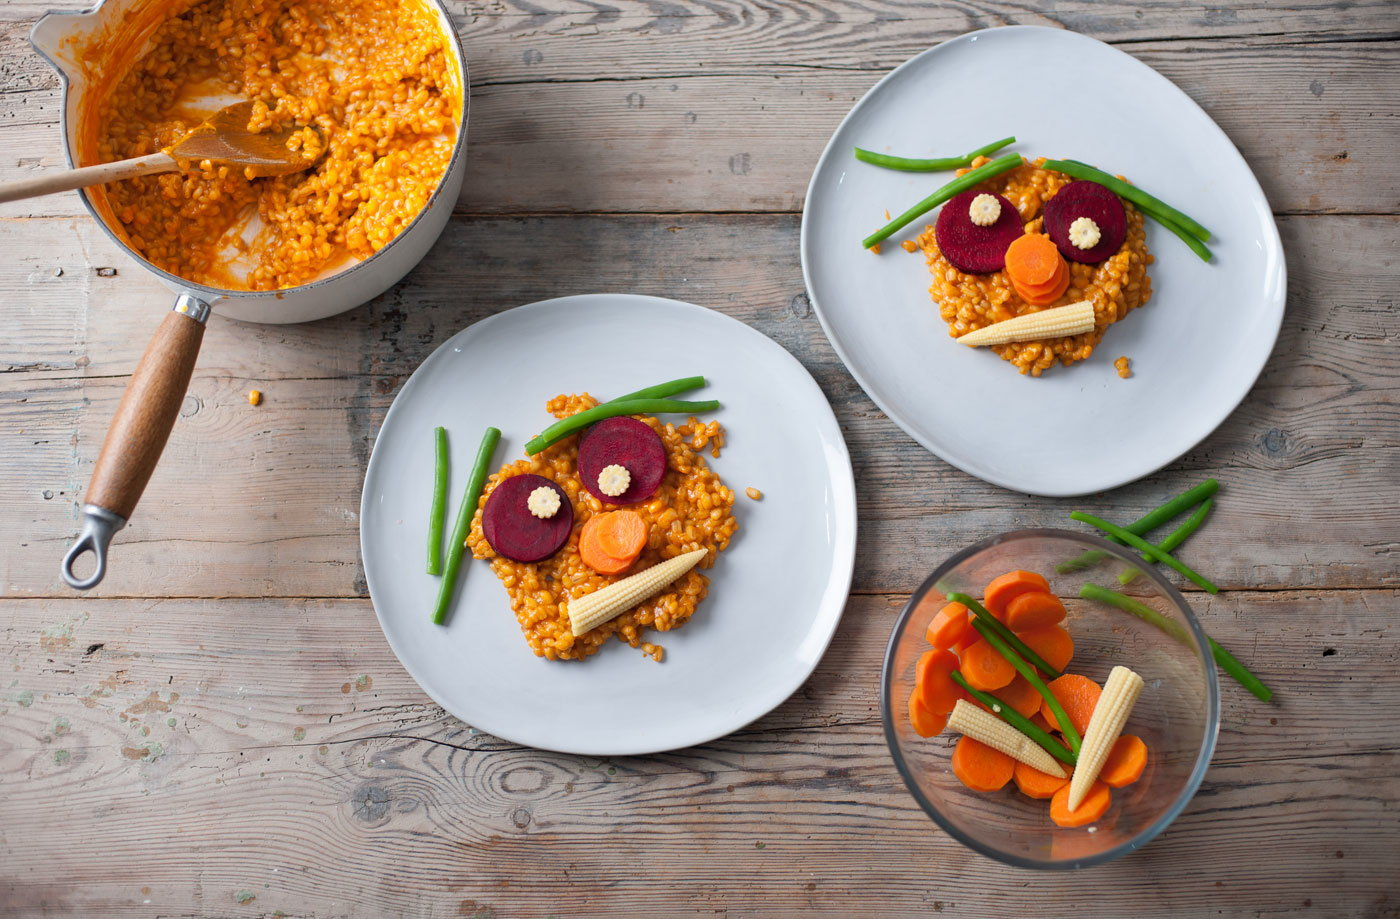 Recipes for kids meal ideas for kids tesco real food andrew mackenzies tomato and vegetable risotto faces forumfinder Gallery